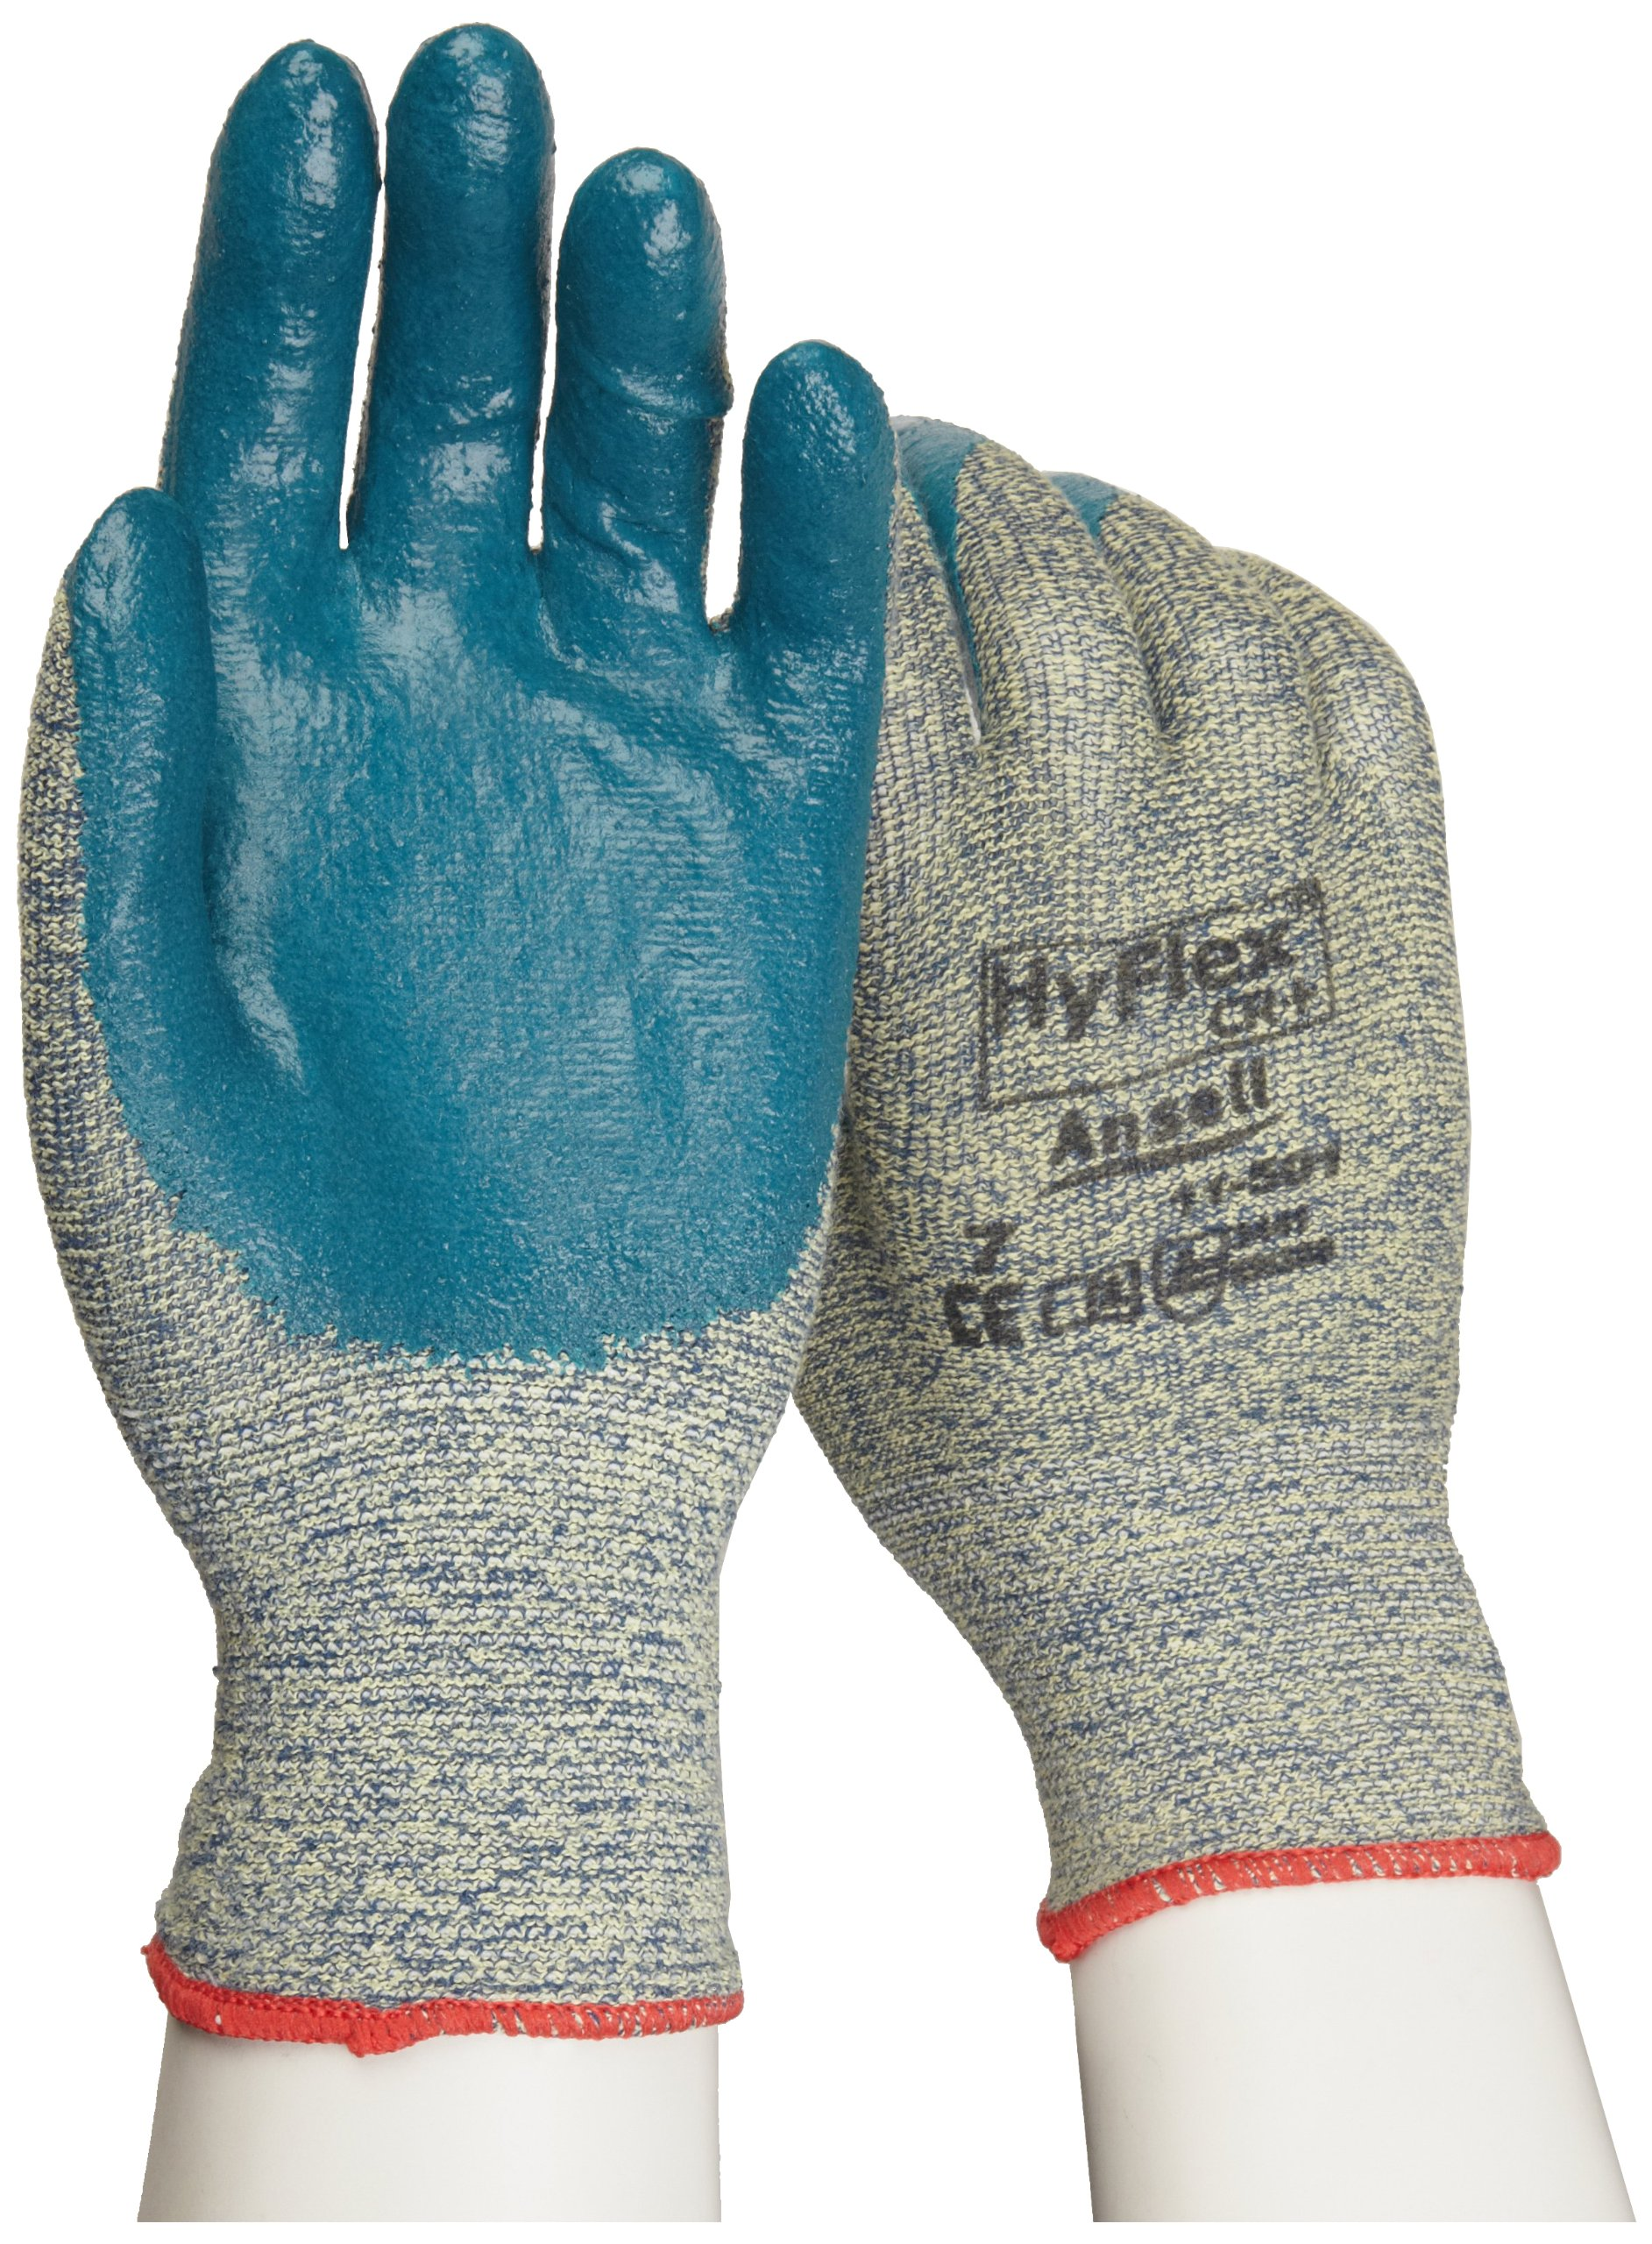 Ansell HyFlex 11-501 Kevlar Glove, Cut Resistant, Blue Foam Nitrile Coating, Knit Wrist Cuff, Small, Size 7 (Pack of 12) by Ansell (Image #2)